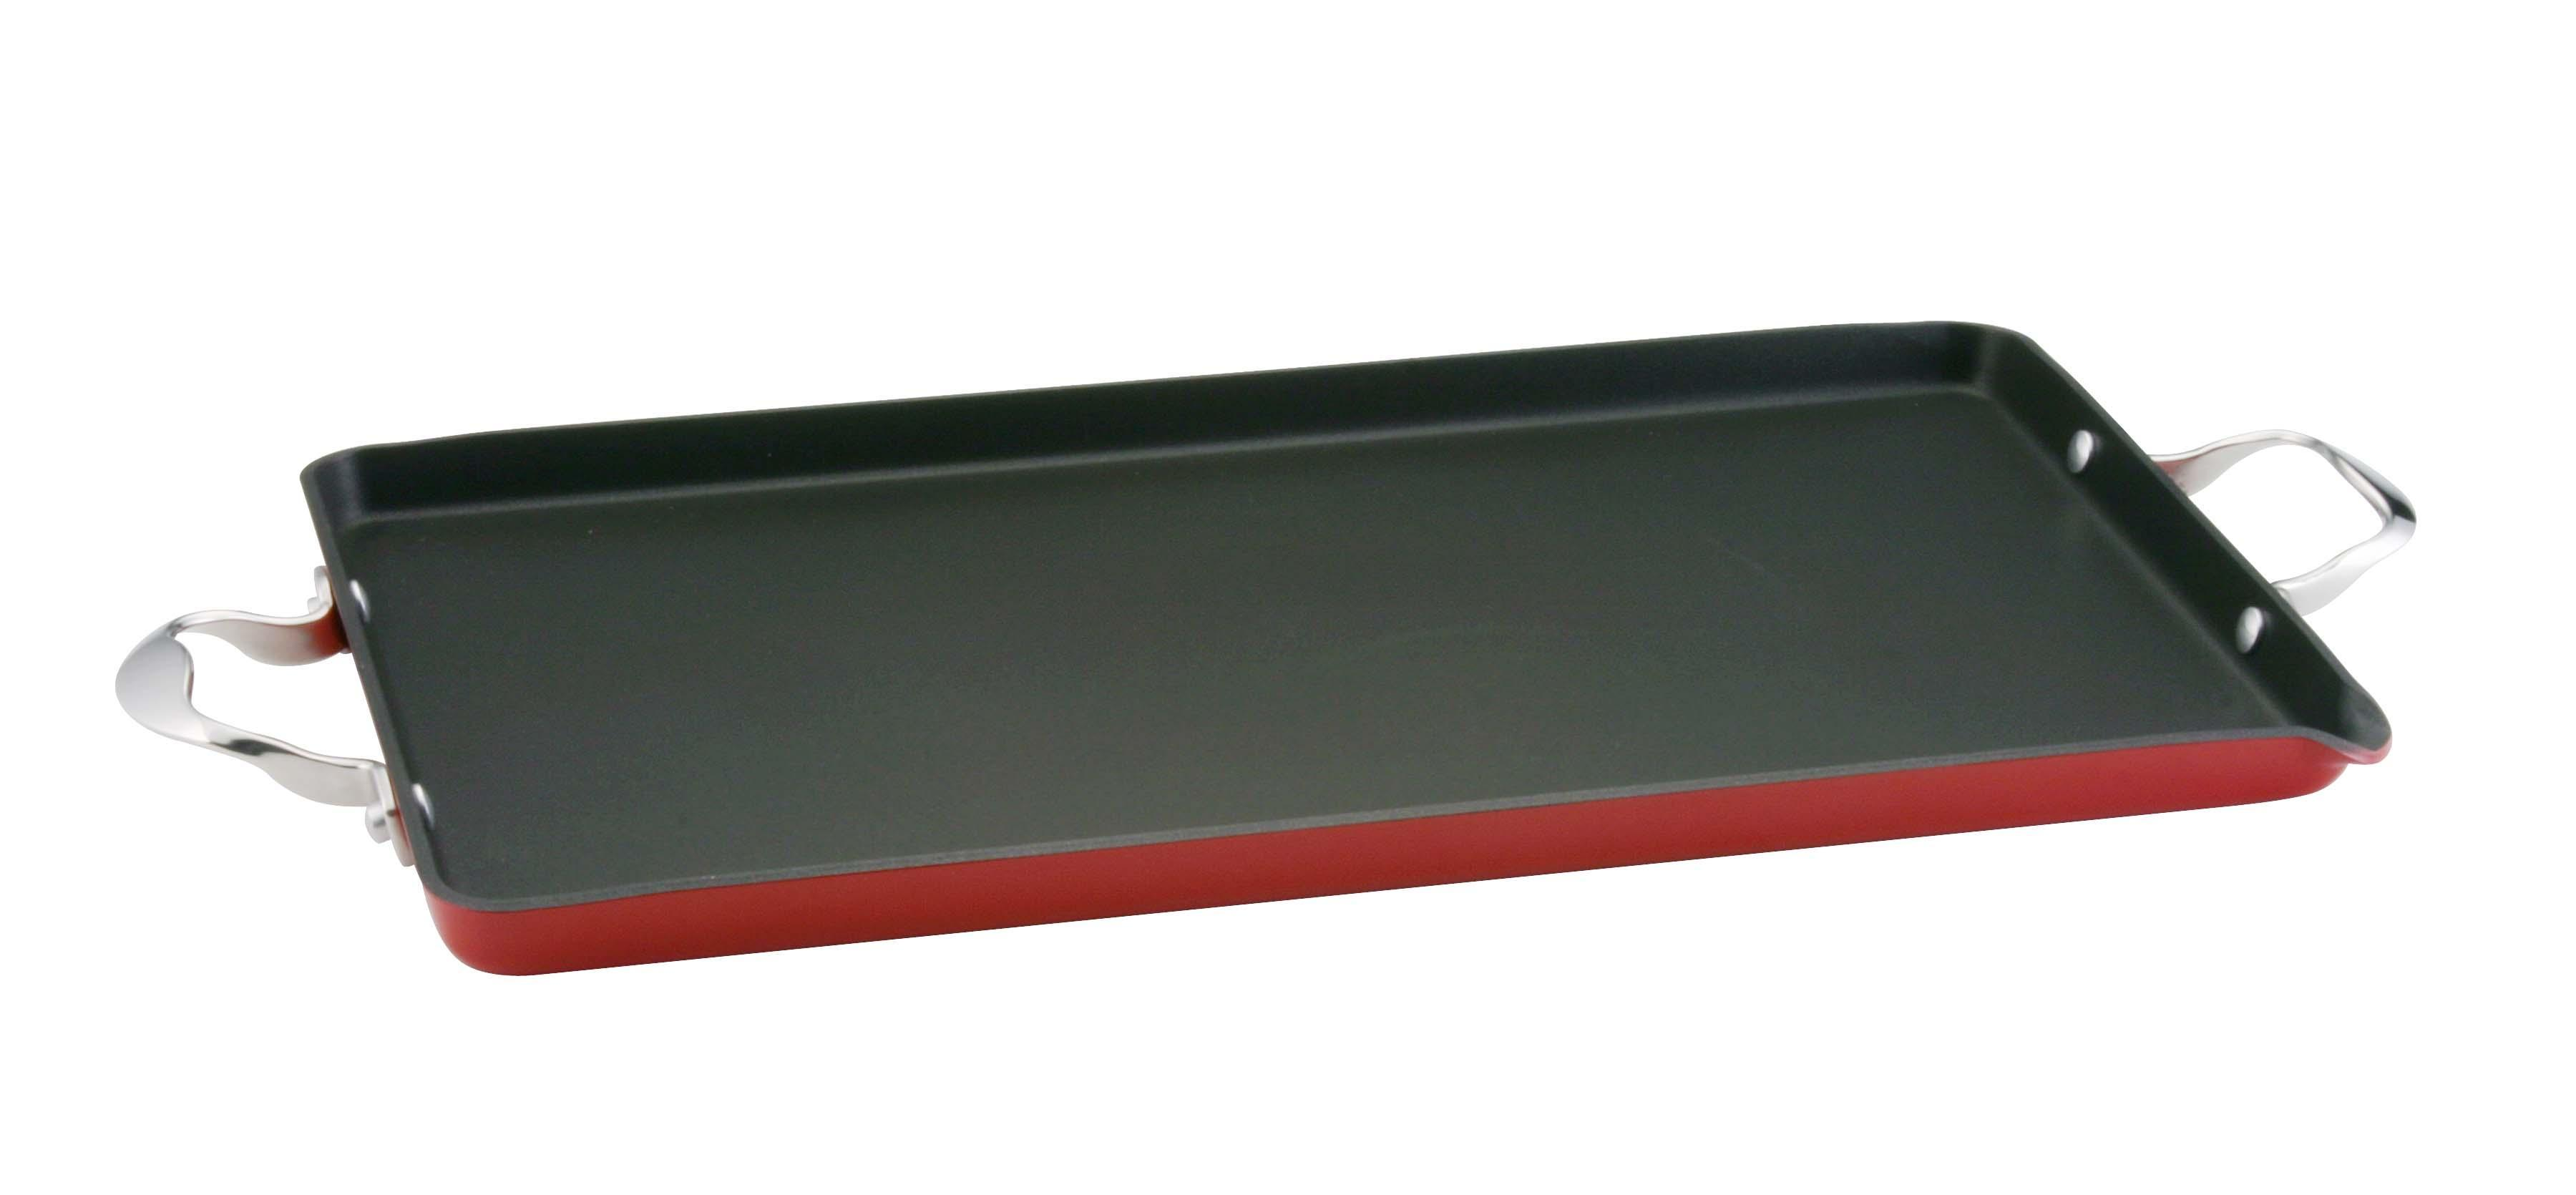 Kitchenaid 12294 red griddle double burner